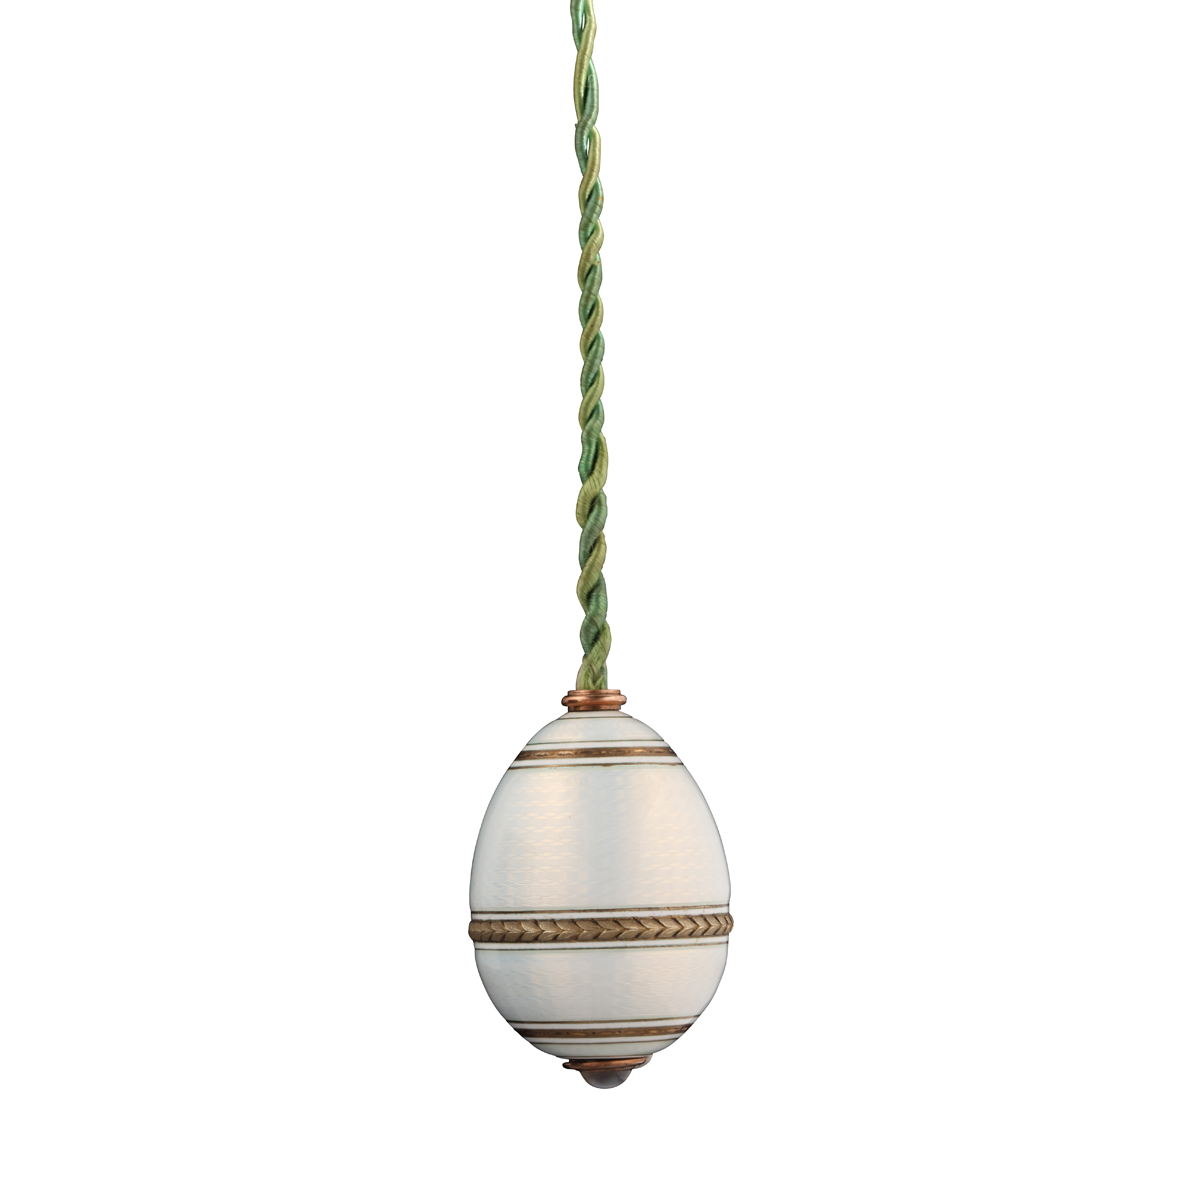 main view, Faberge Egg-form Hanging Bell Push